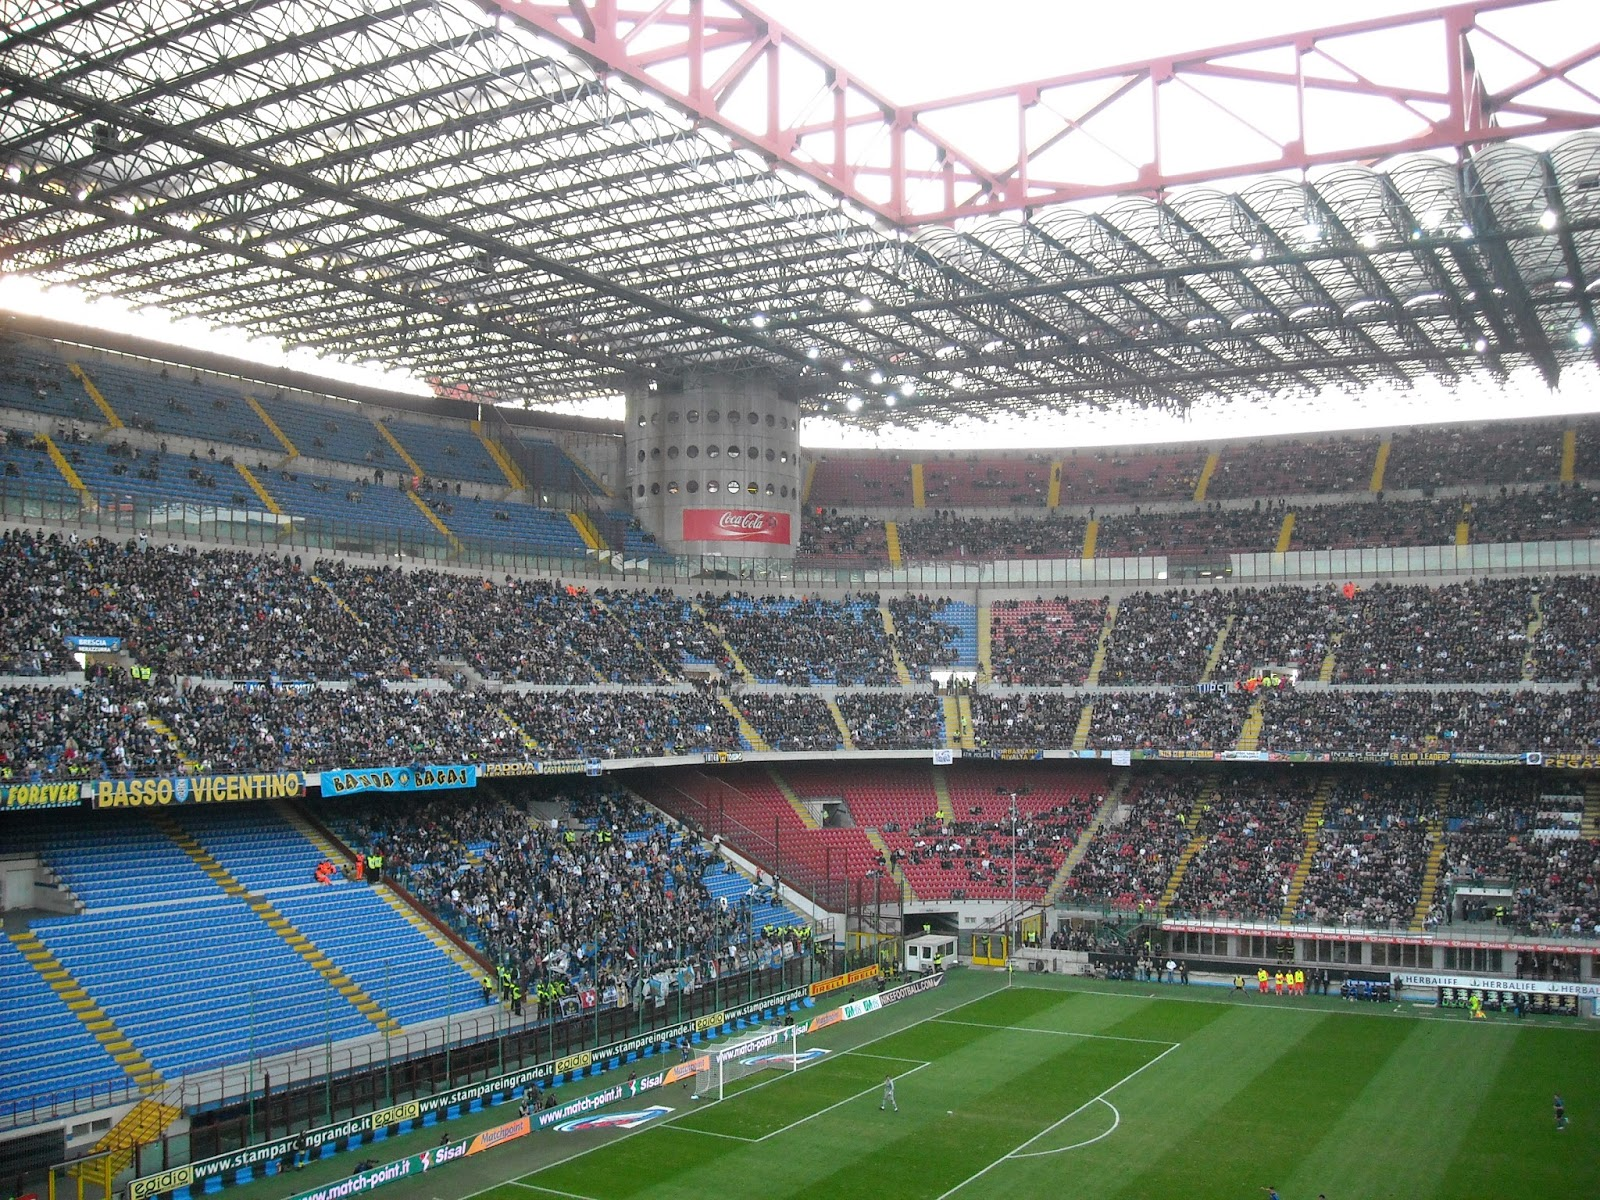 k 225 san siro milan - photo#14